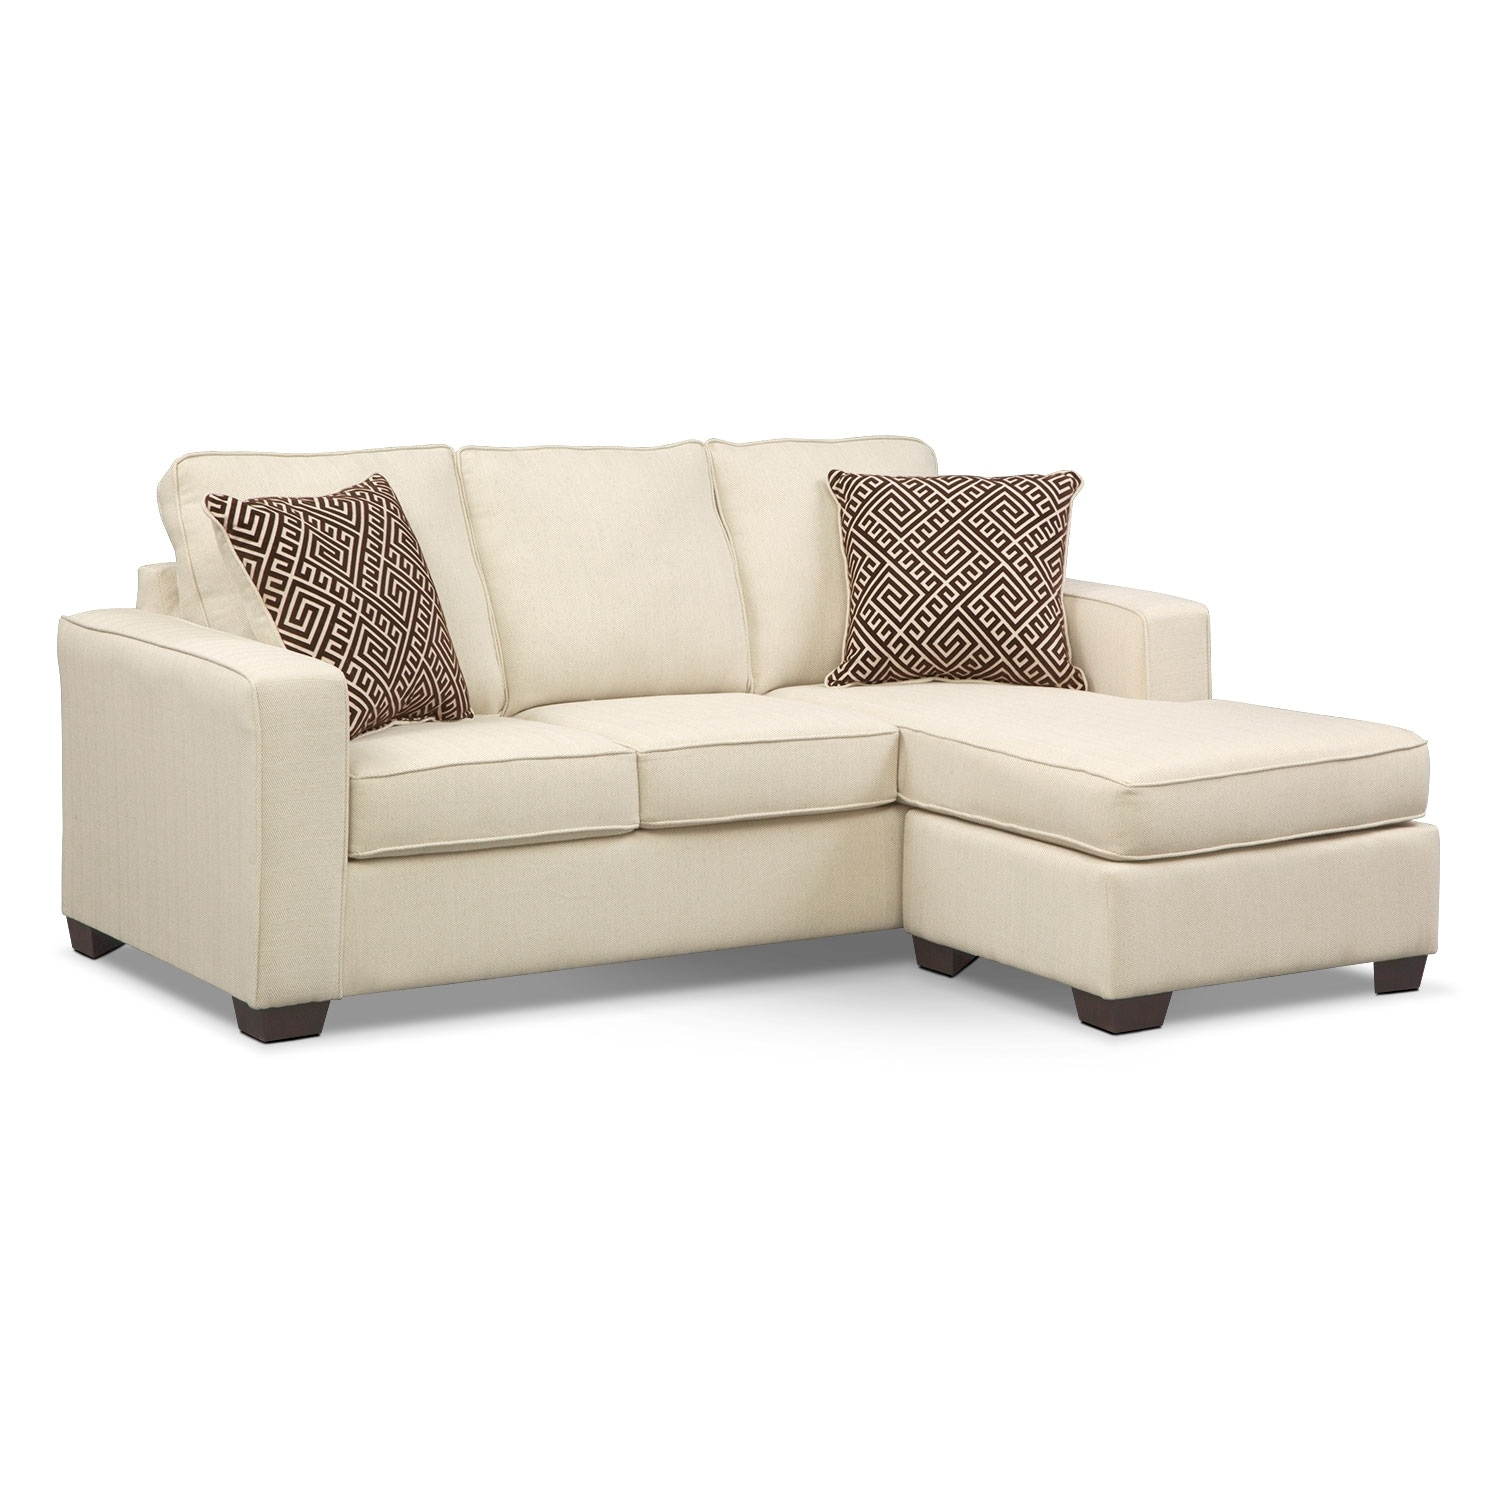 Charmant Living Room Furniture   Sterling Memory Foam Sleeper Sofa With Chaise    Beige